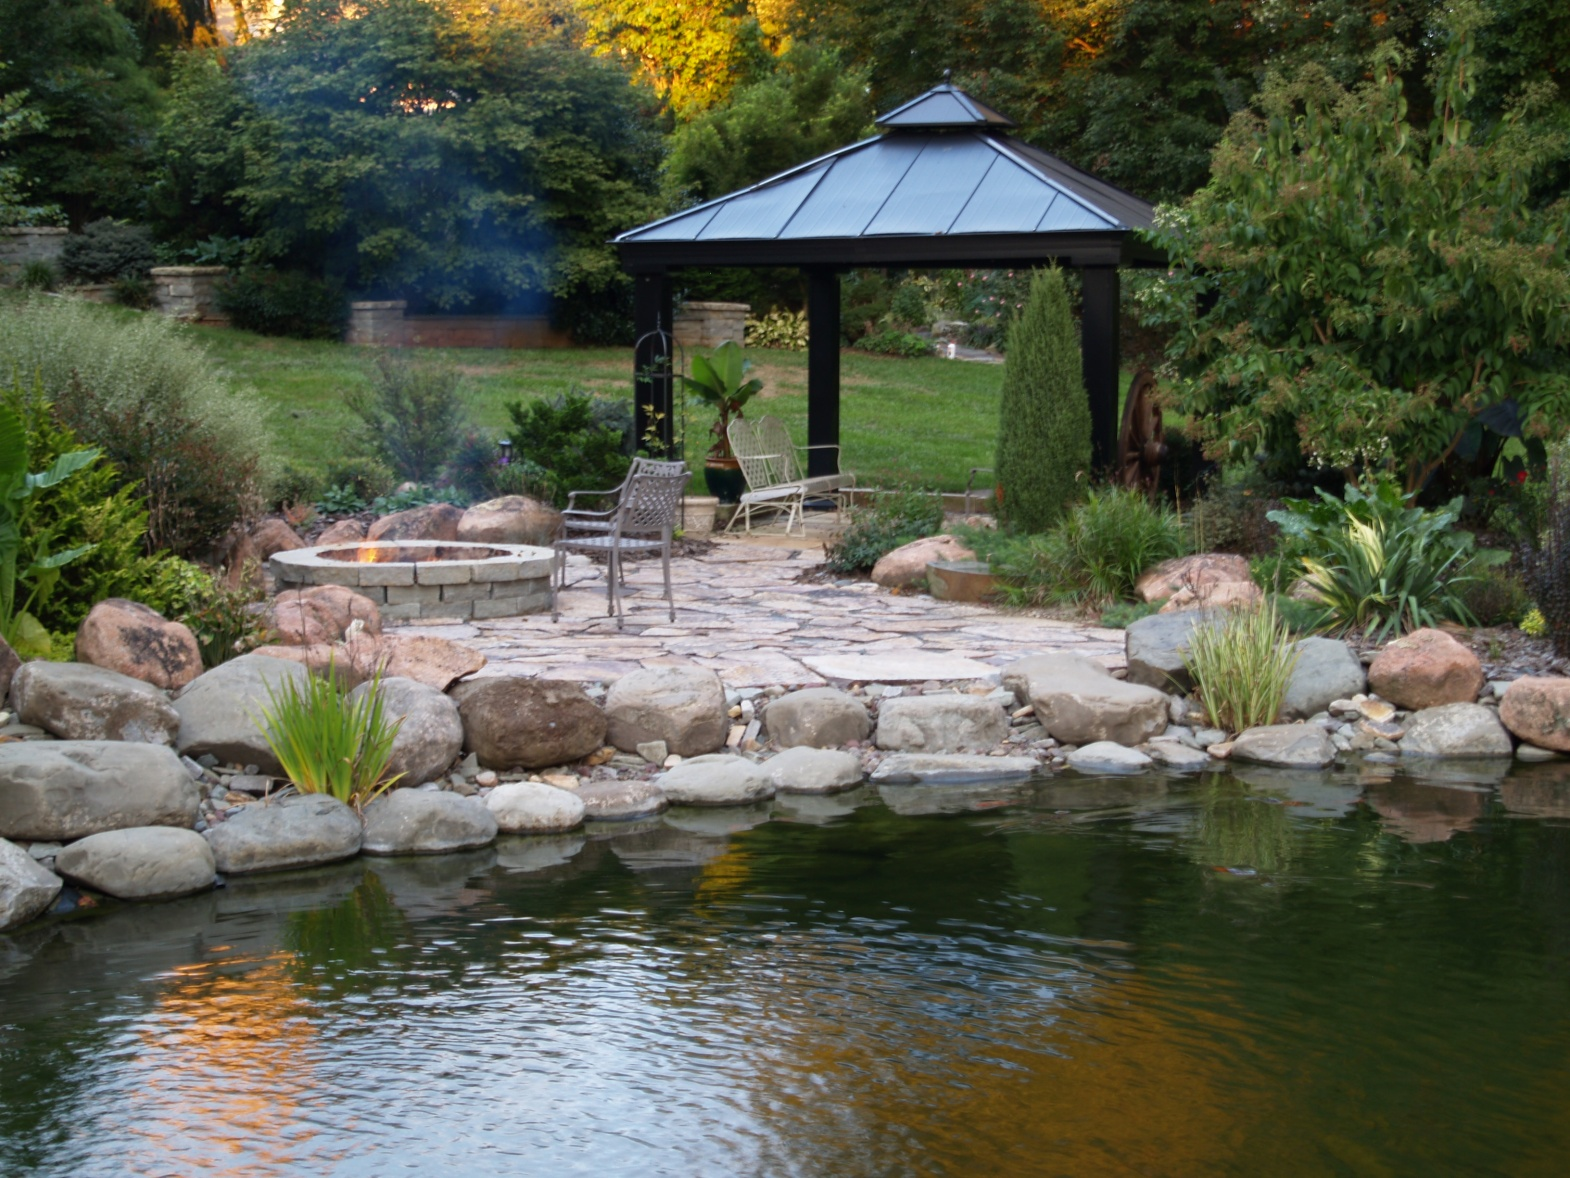 The swimming pond ramblin 39 through dave 39 s garden for Garden pool designs